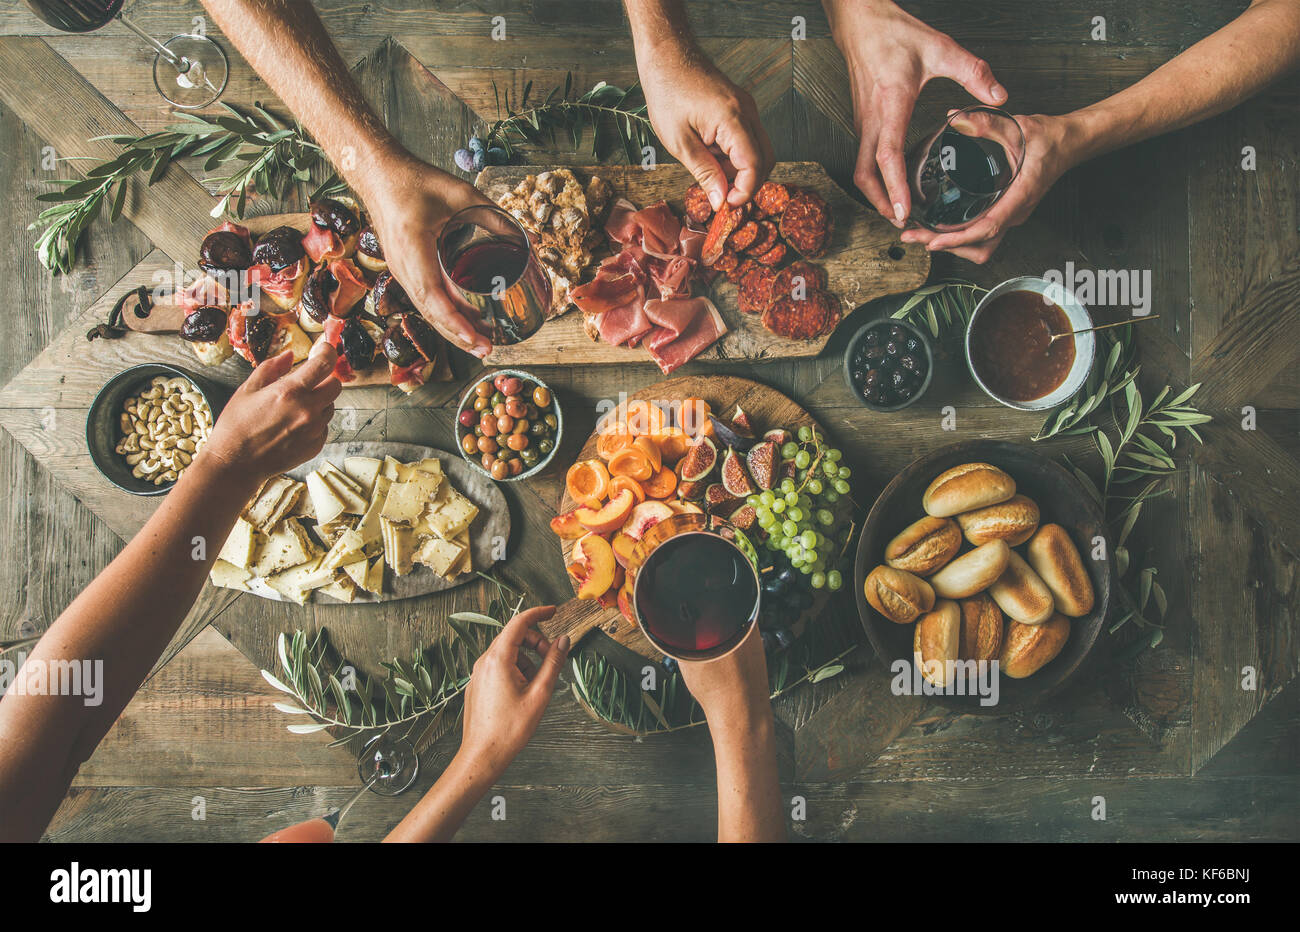 Top view of people drinking and eating together over table - Stock Image